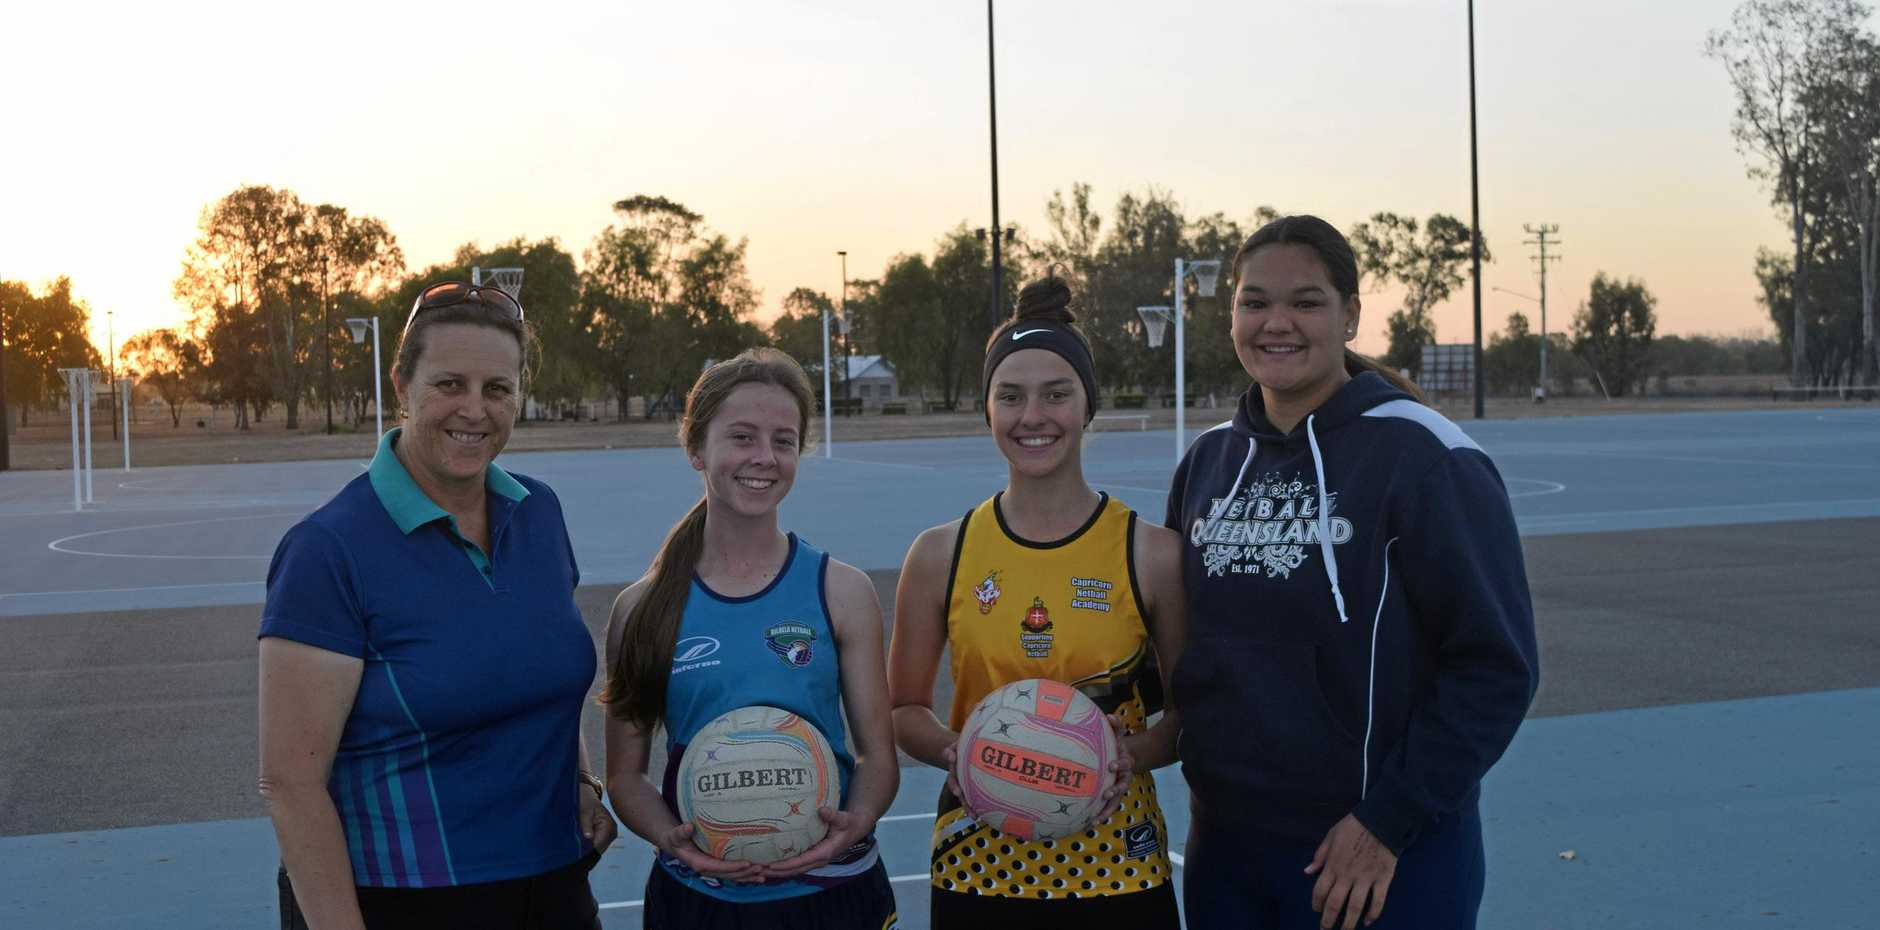 AWESOME FOURSOME: Shari Hancock will coach Brylea Griffiths, Zali Middleton and Zali Eckel at the U16 state championships.